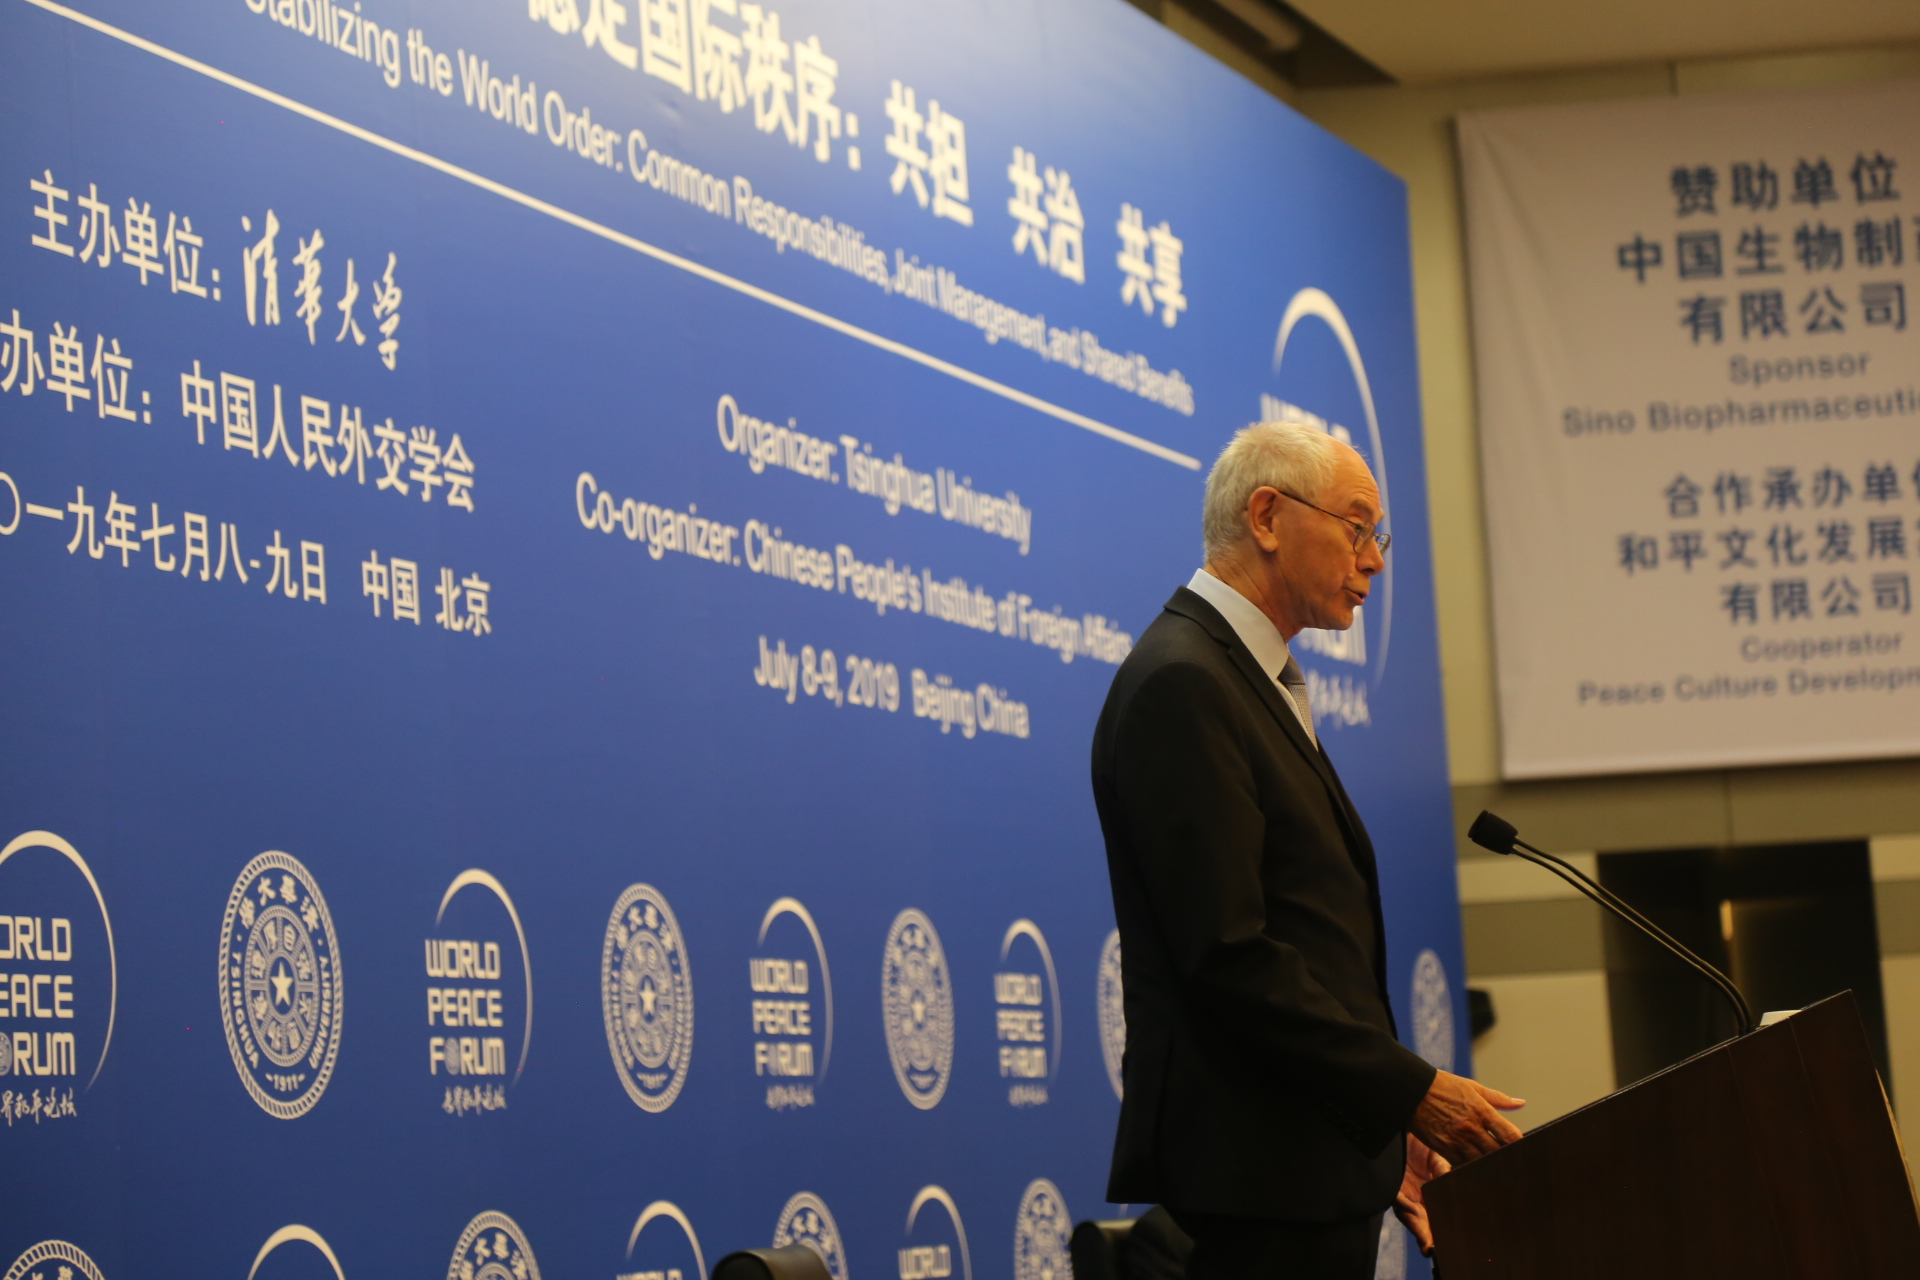 Protectionism not conducive to improving living standards of citizens: Herman Van Rompuy